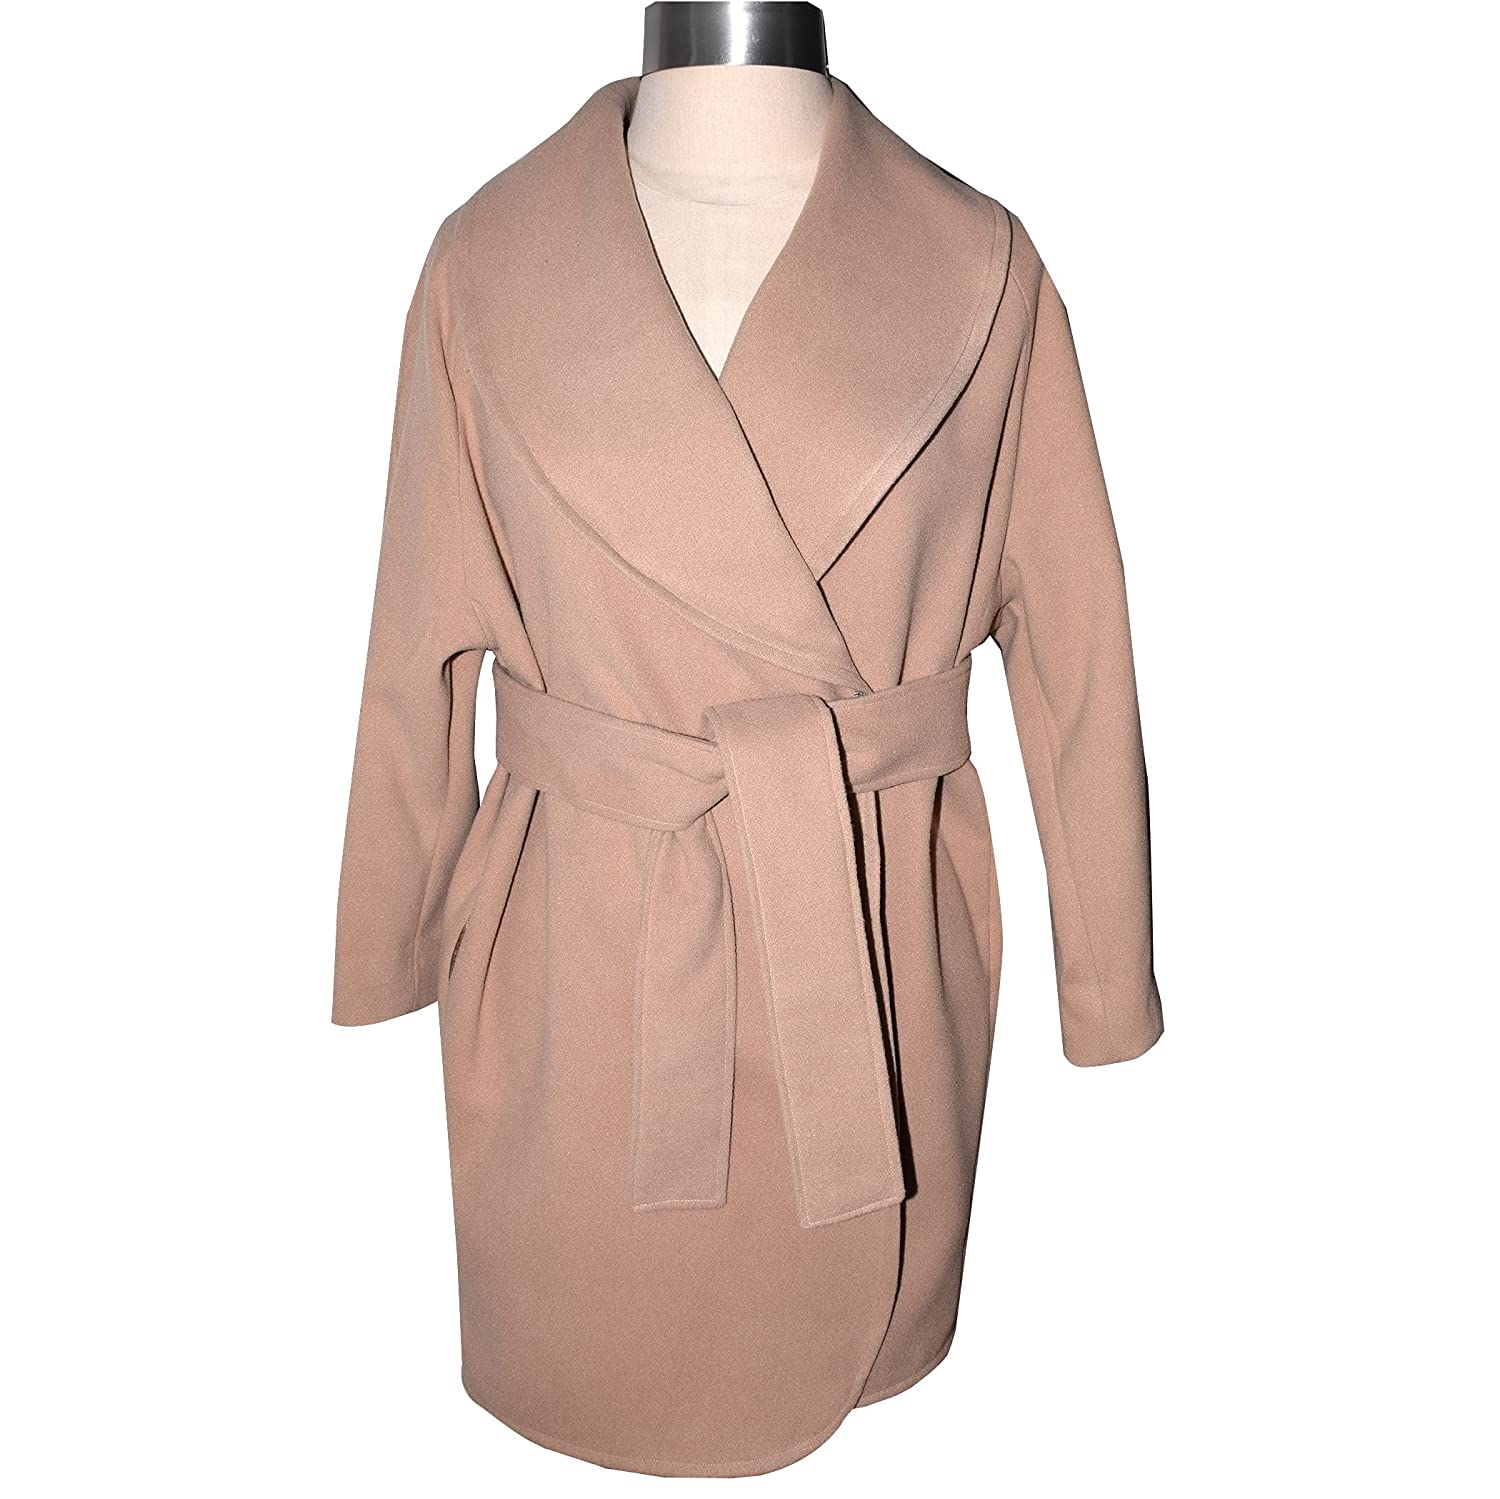 Luxurious Camelhair Polyester Wrap Free shipping / New Tie Bombing free shipping Coat with